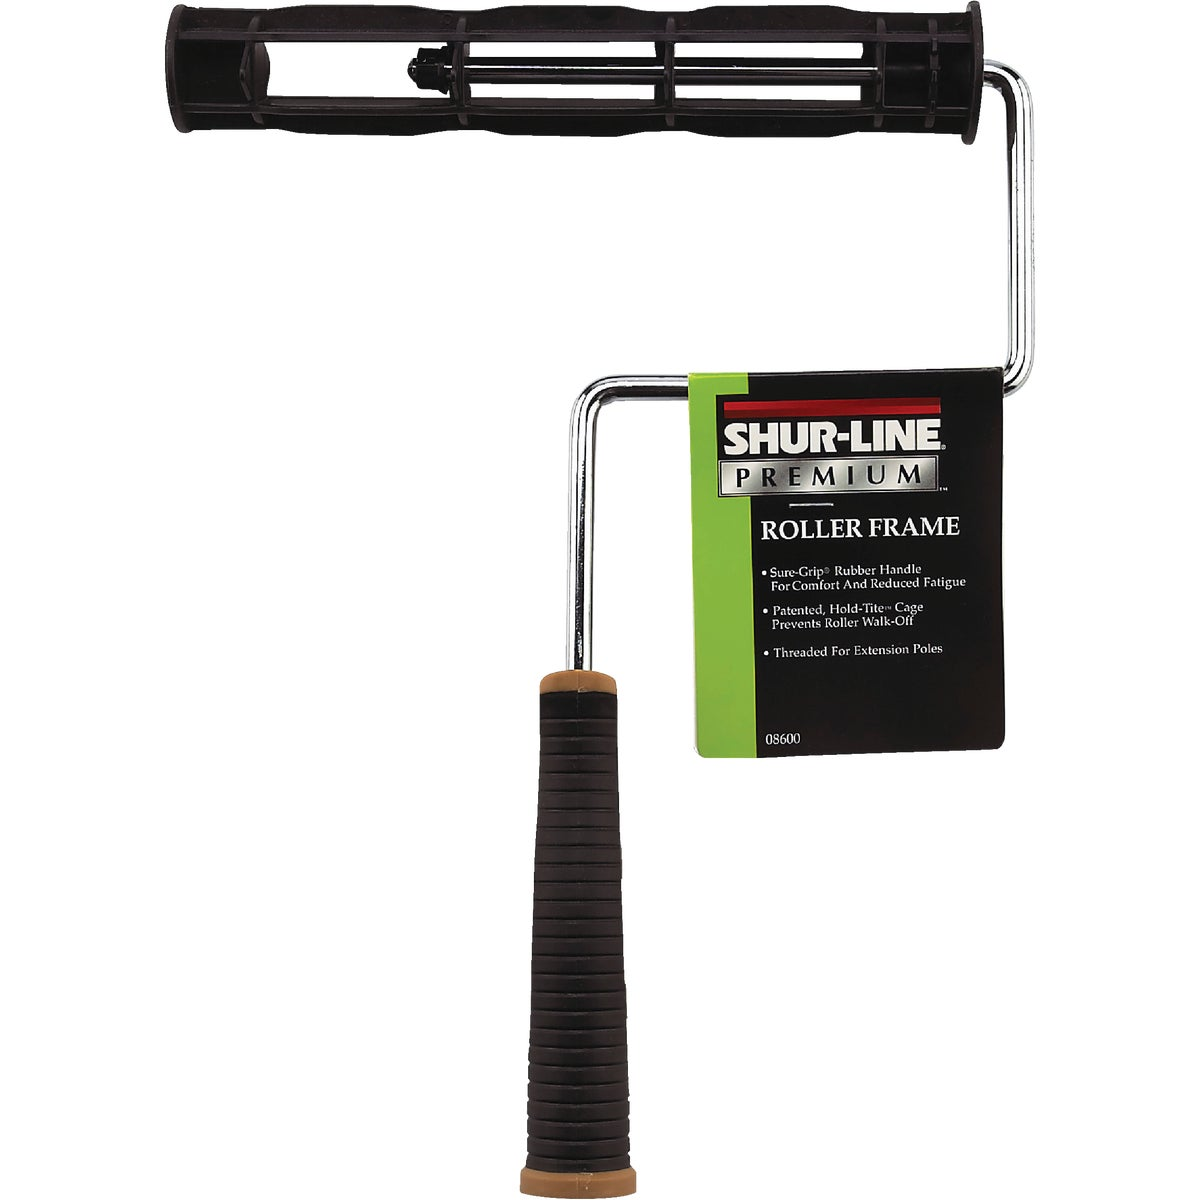 "9"" STRAIGHT ERGO FRAME - 8600 by Shur Line"